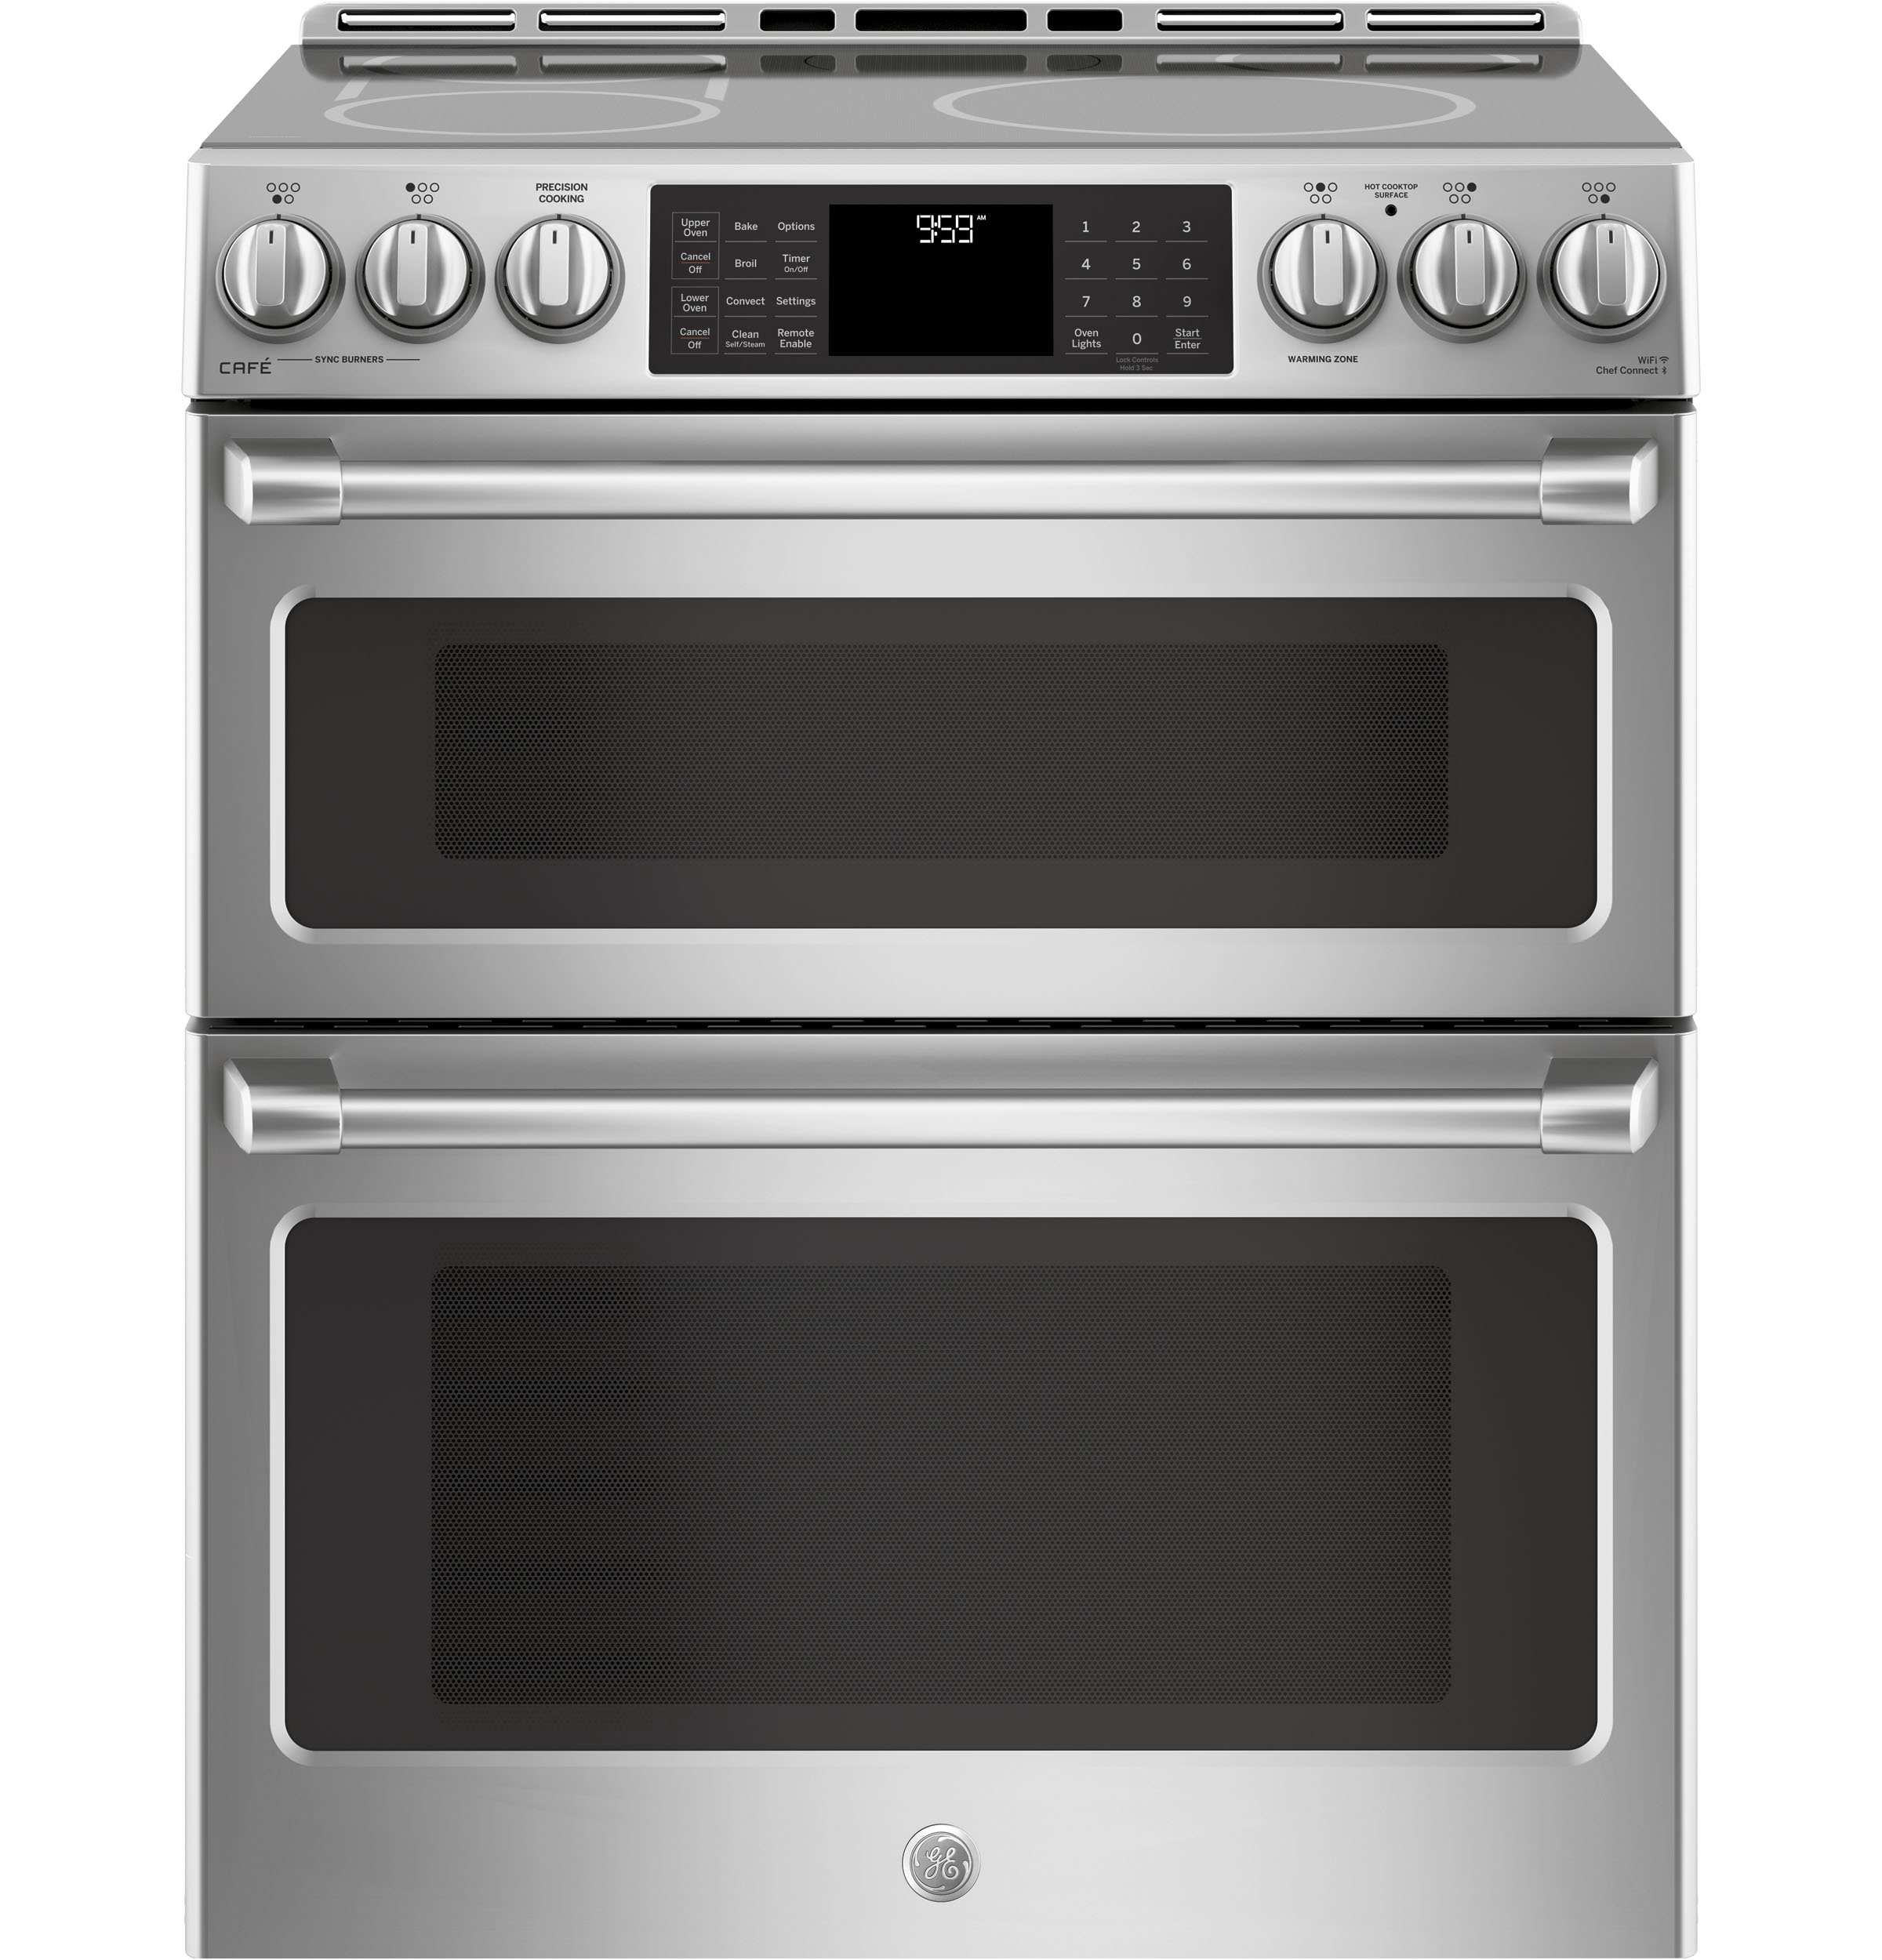 renovate your kitchen and your cooking with new ge appliances